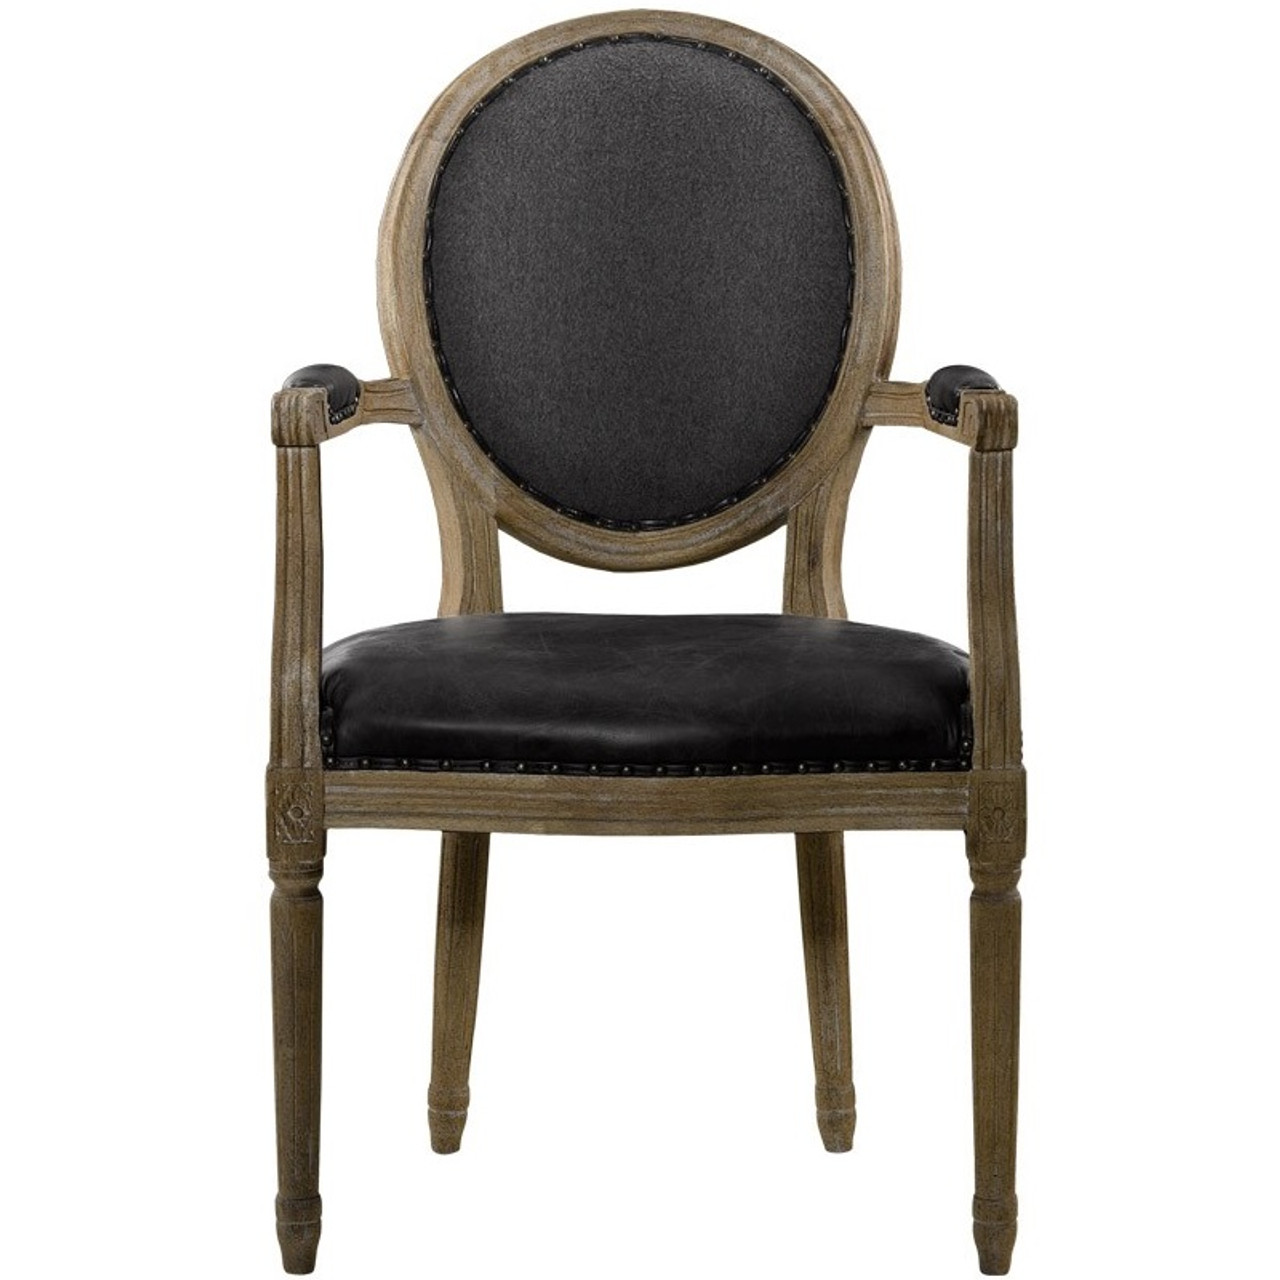 black leather dining room chairs | Louis Dining Chair in Black Leather | Zin Home